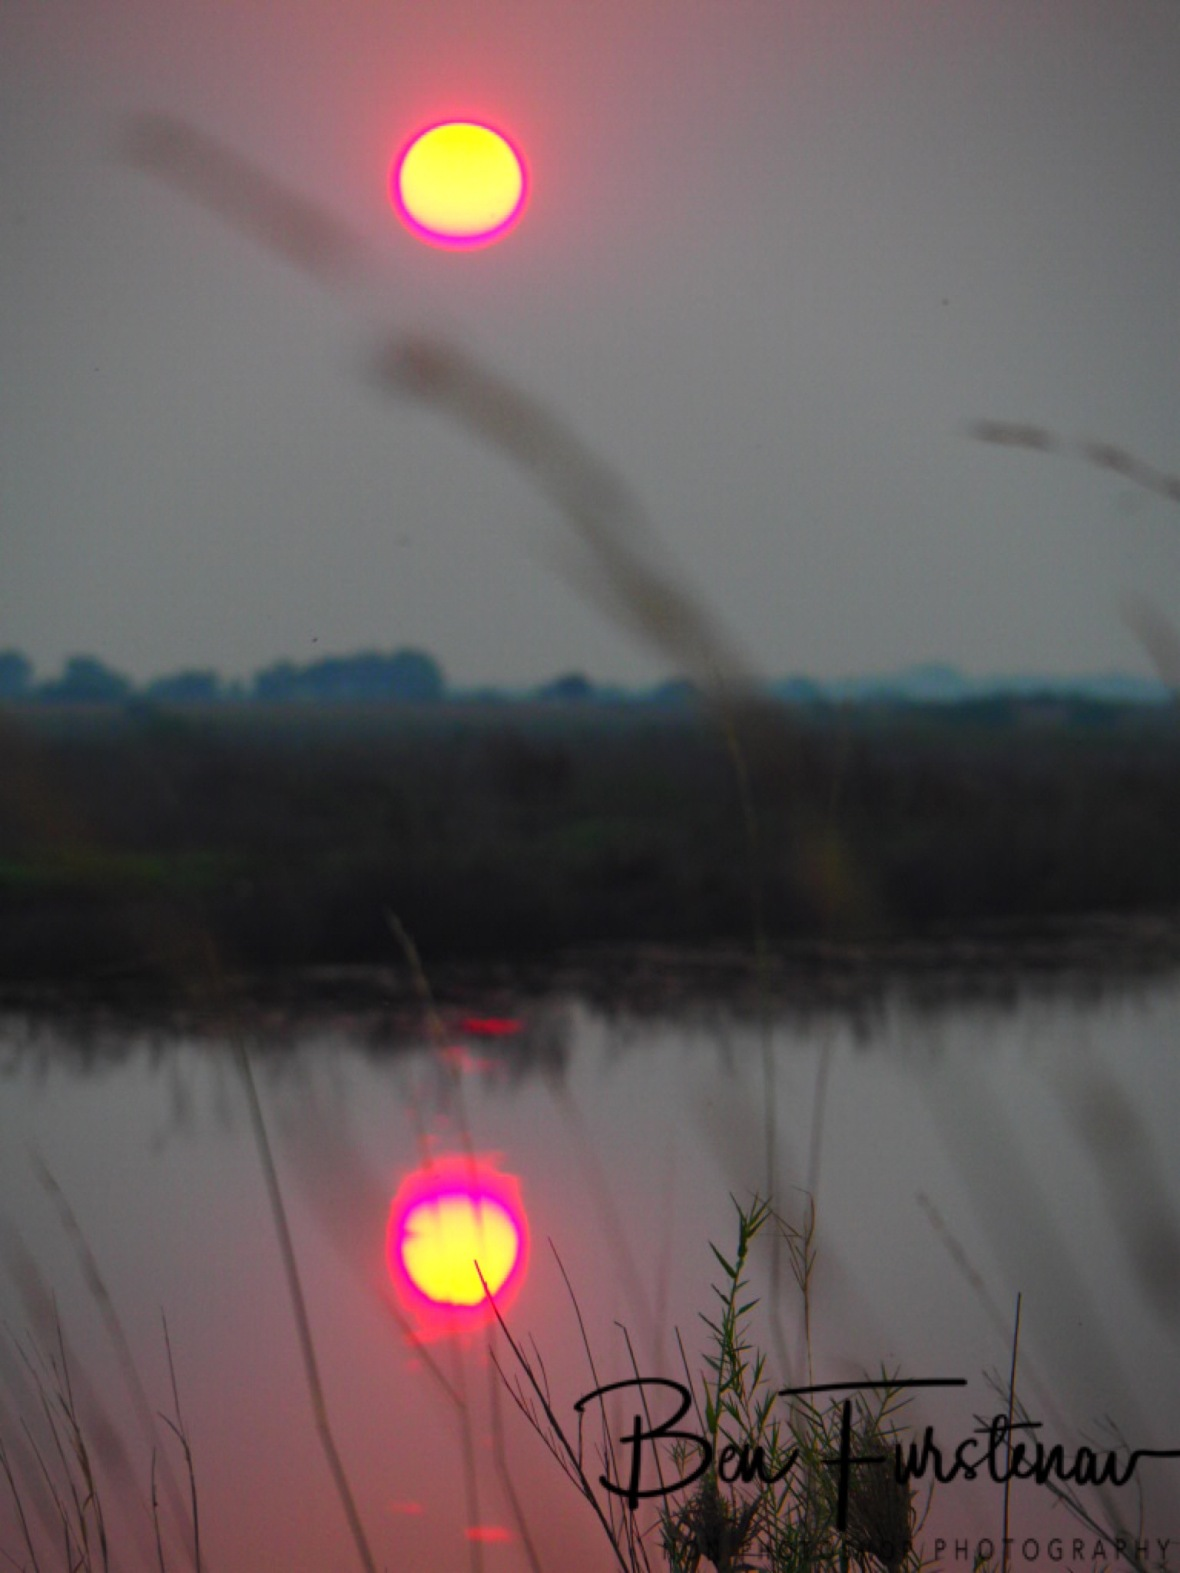 A purple ring appears around the yellow sun near Sioma Falls, Zambia